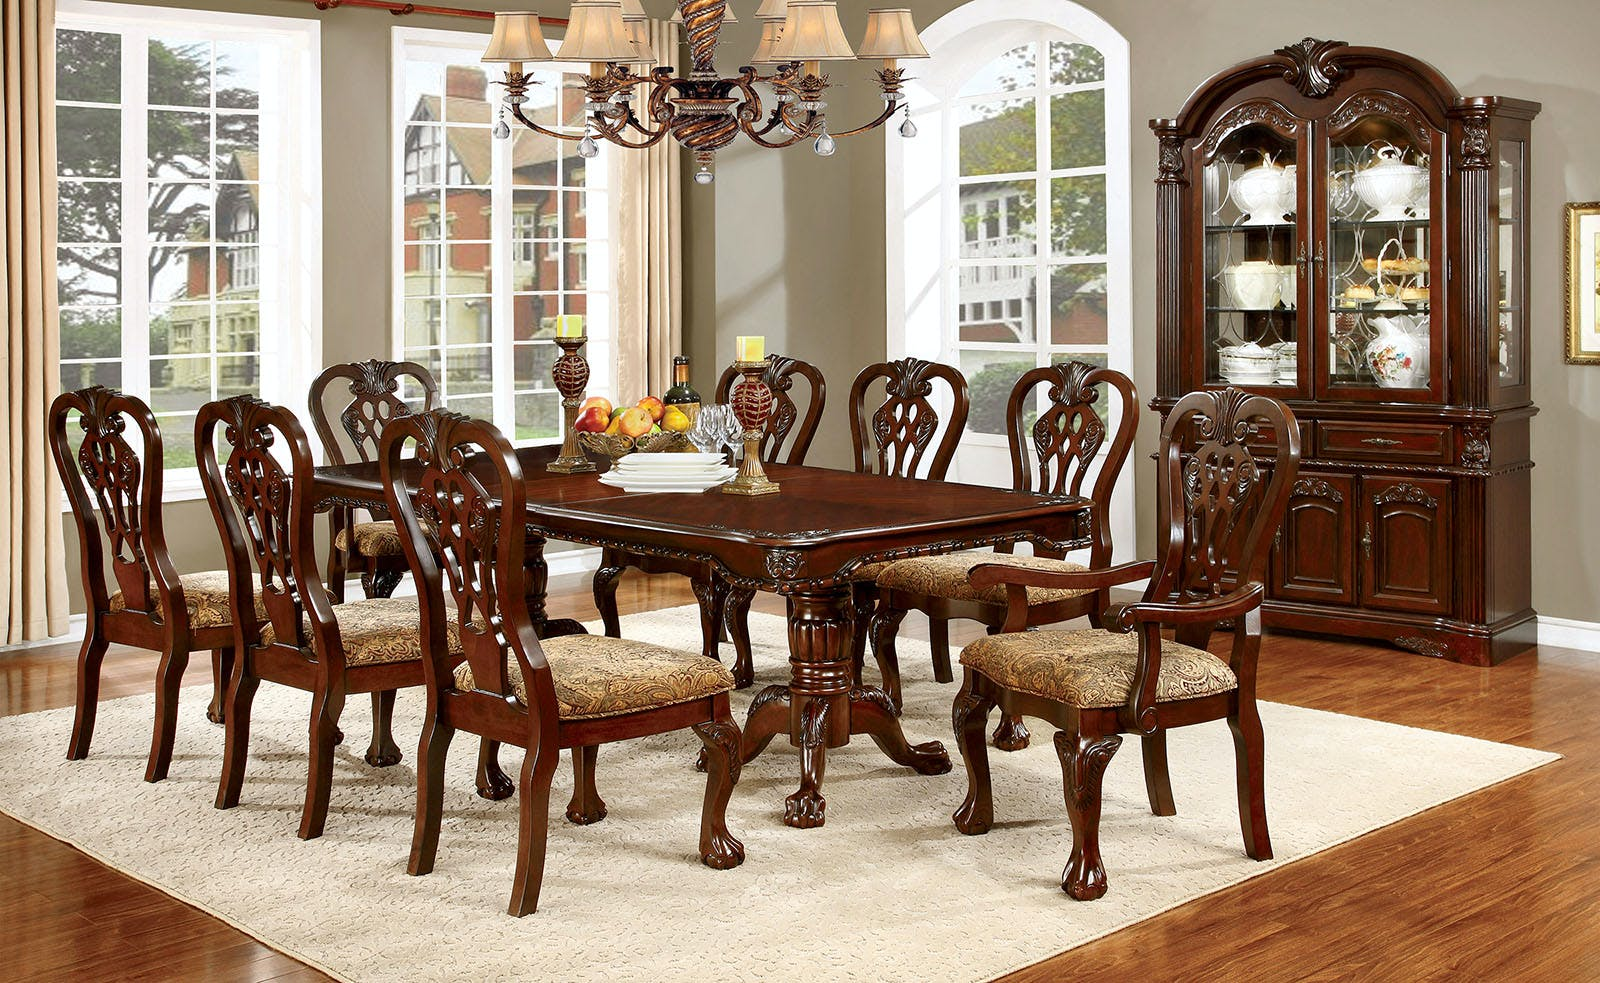 Furniture Of America Dining Room Hutch Buffet Cherry Cm3212hb Set The Furniture Mall Duluth